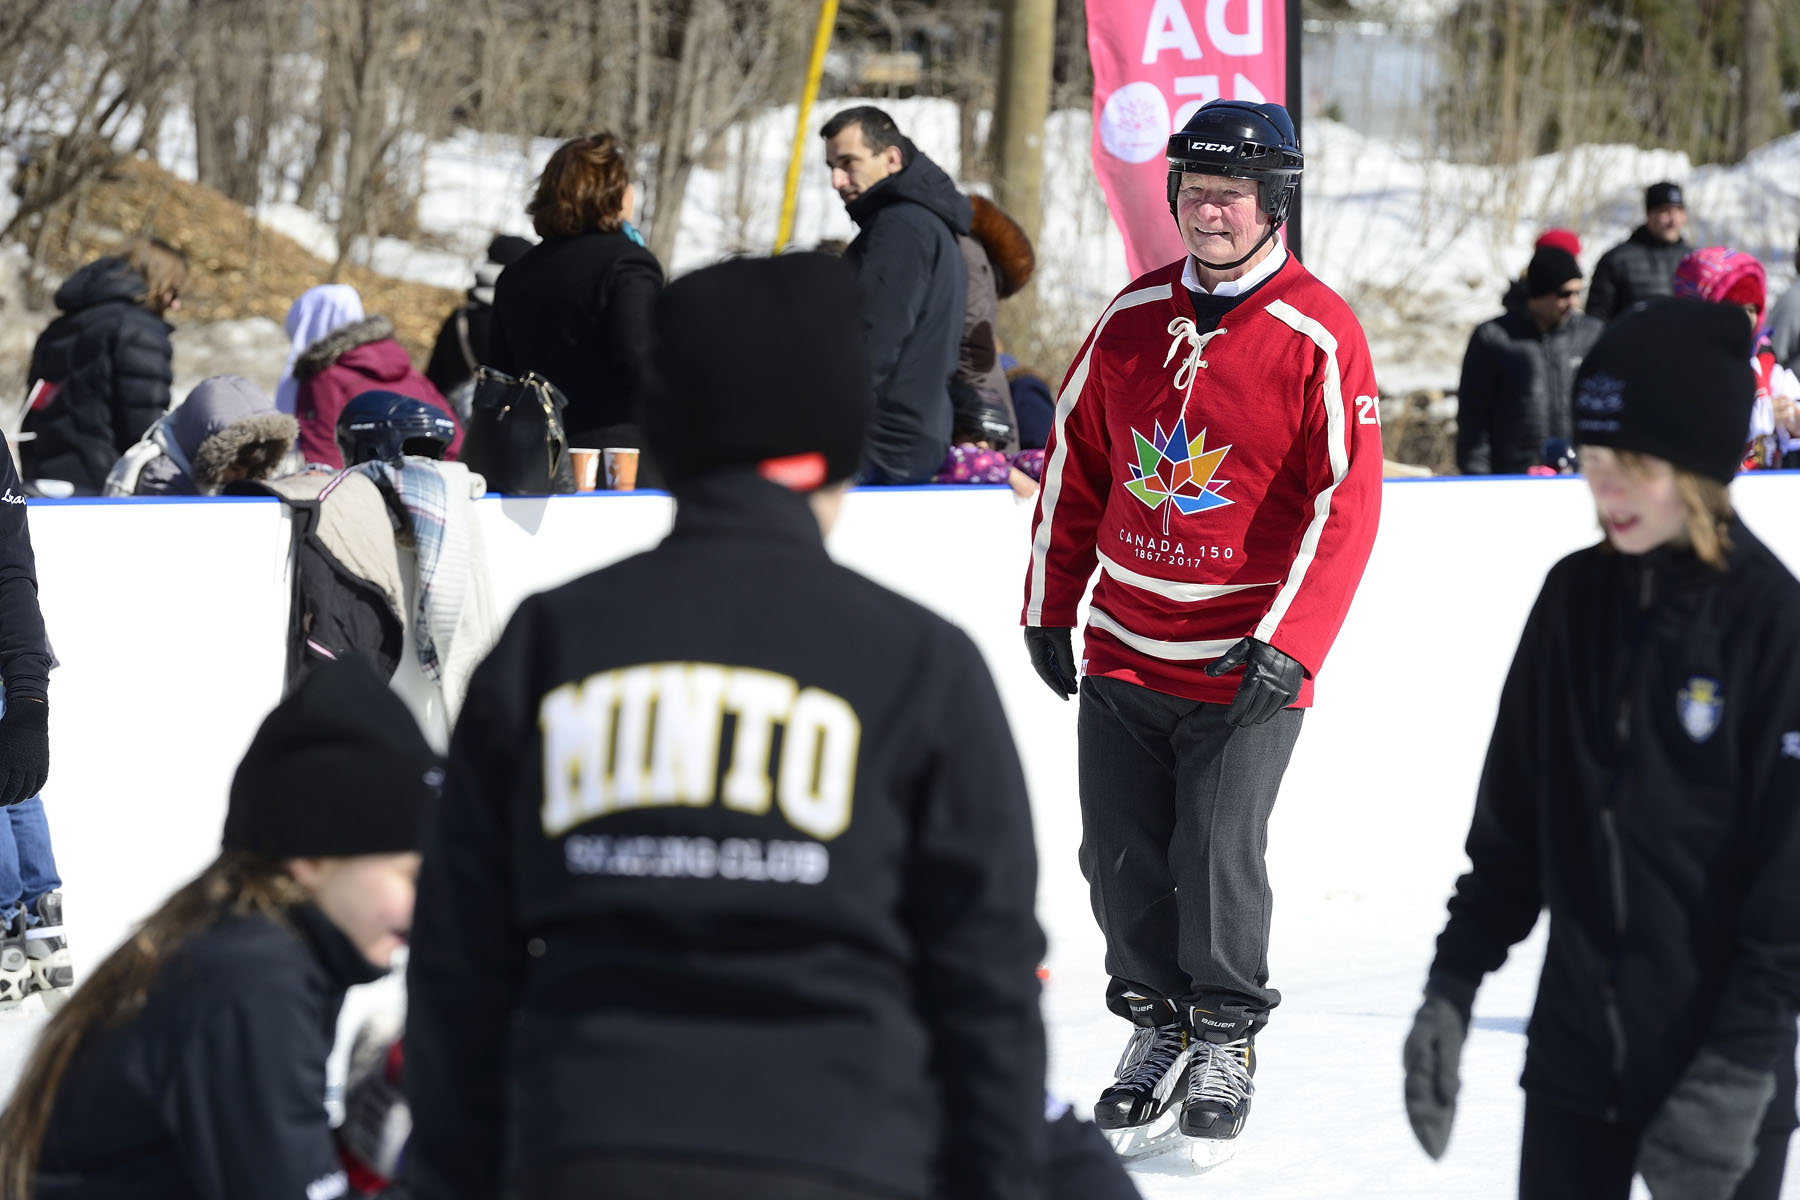 Governor General David Johnston was happy to skate with his guests.